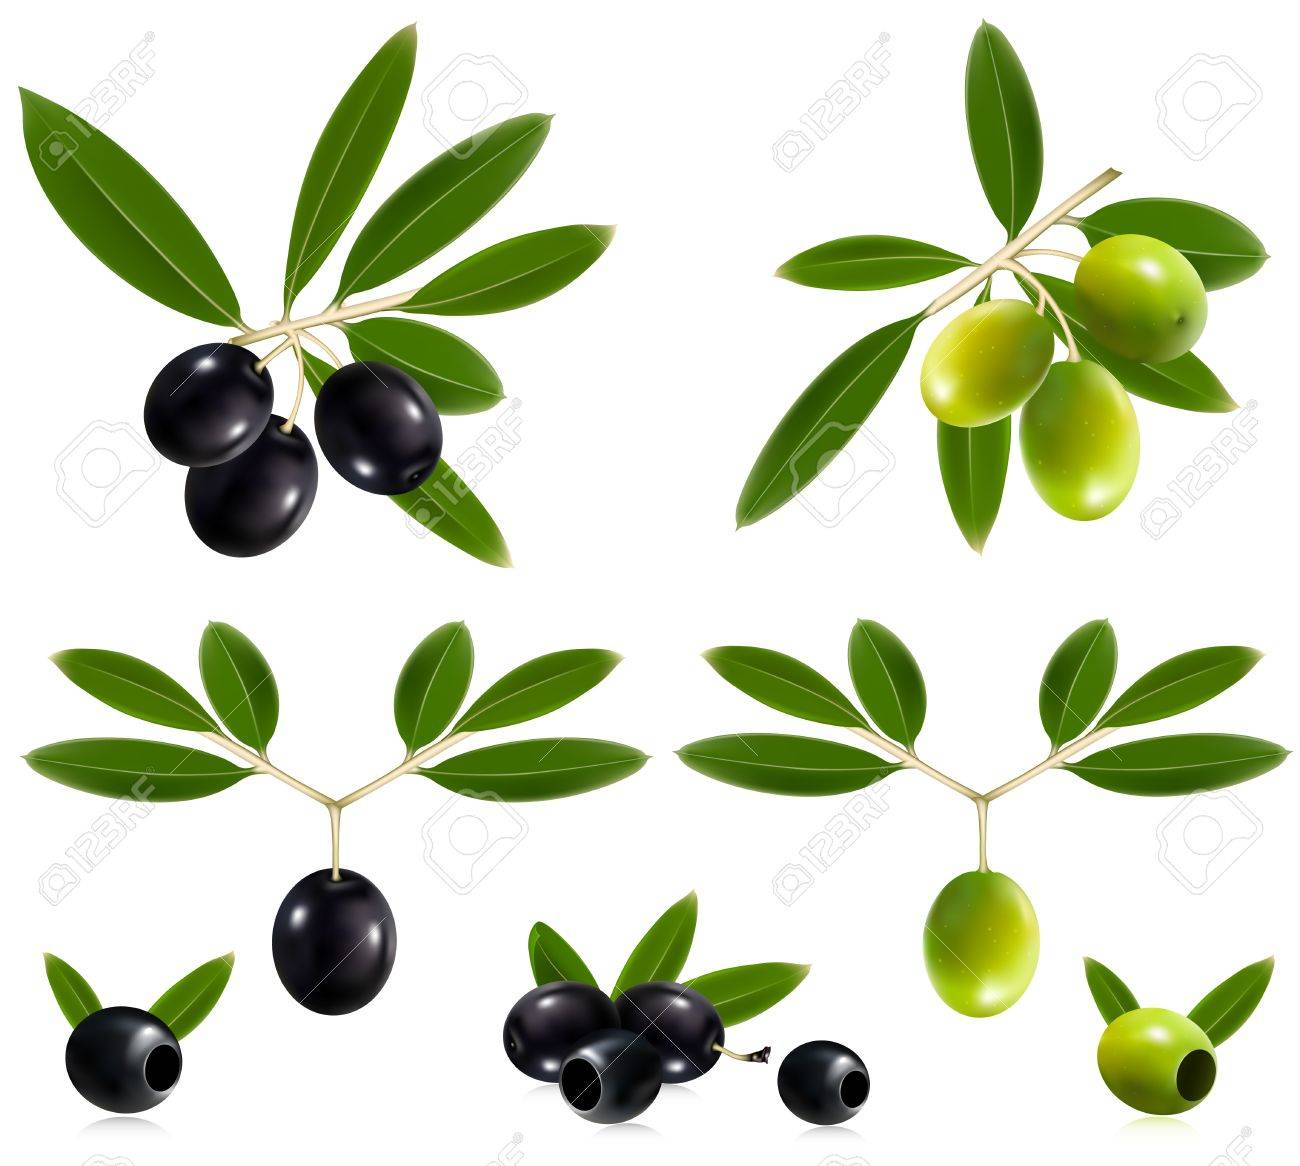 Photorealistic vector illustration. Green  and black olives with leaves. Stock Vector - 10053528